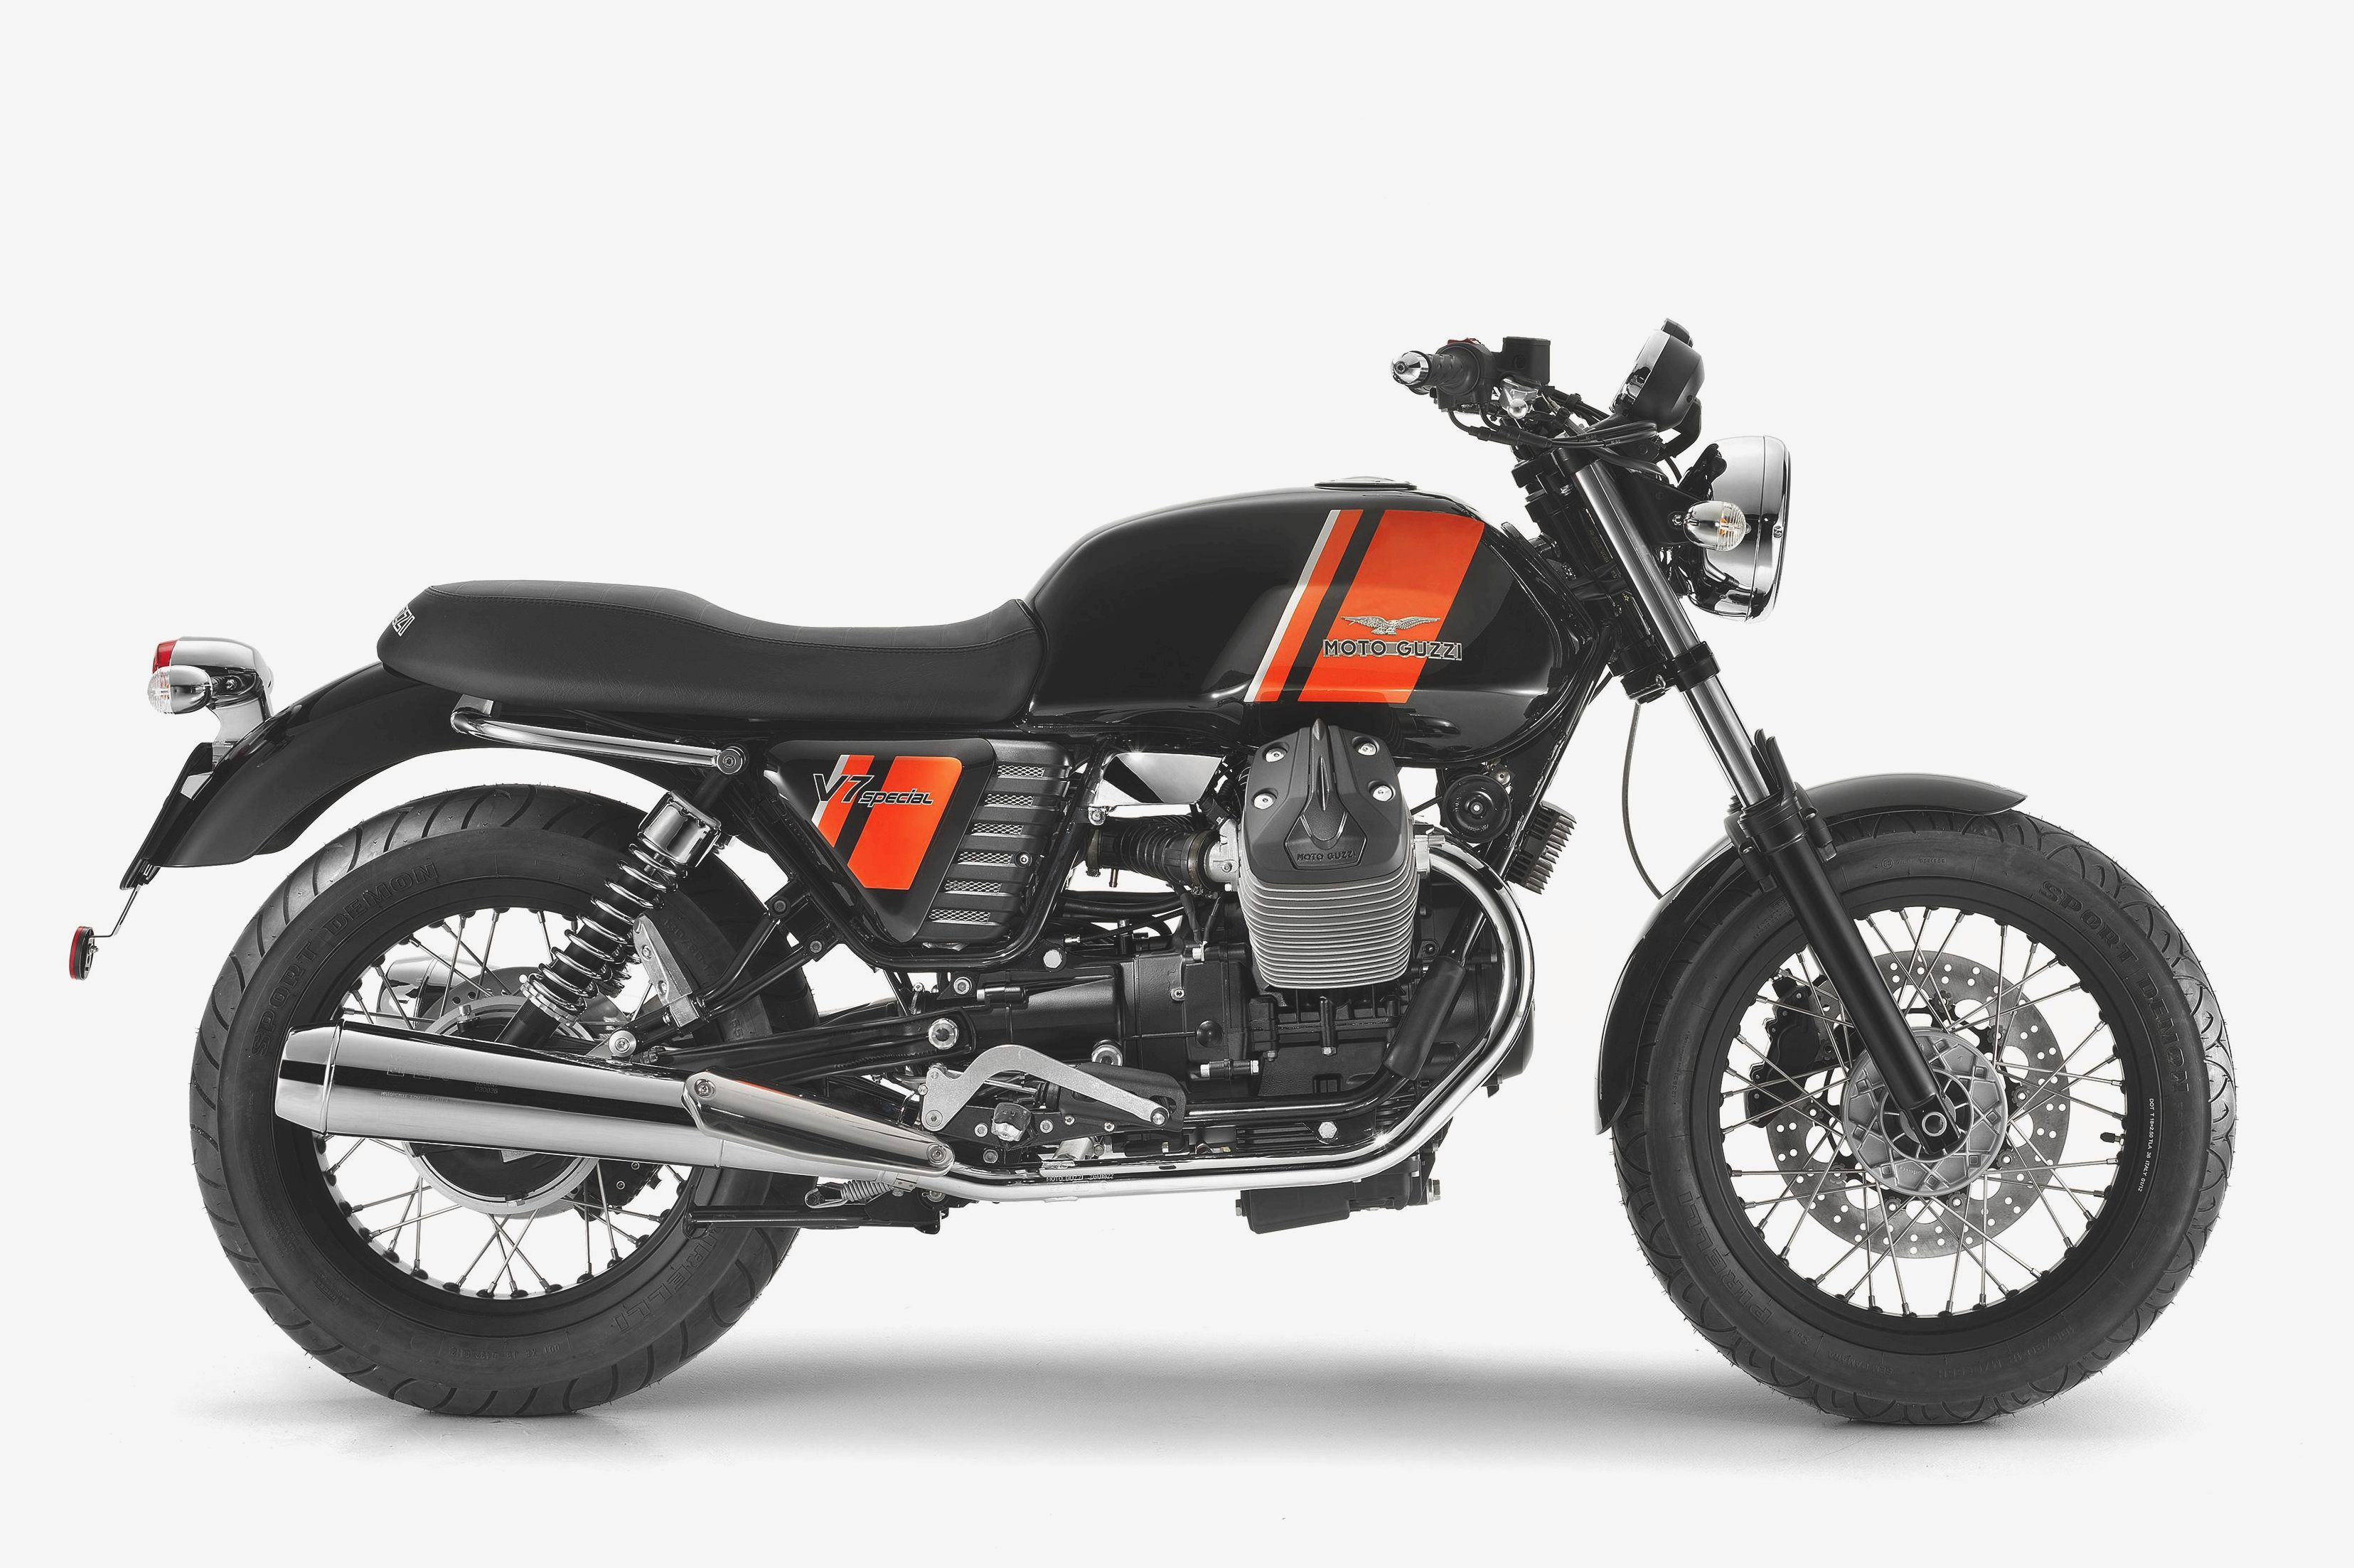 2005 moto guzzi breva 750 pics specs and information. Black Bedroom Furniture Sets. Home Design Ideas